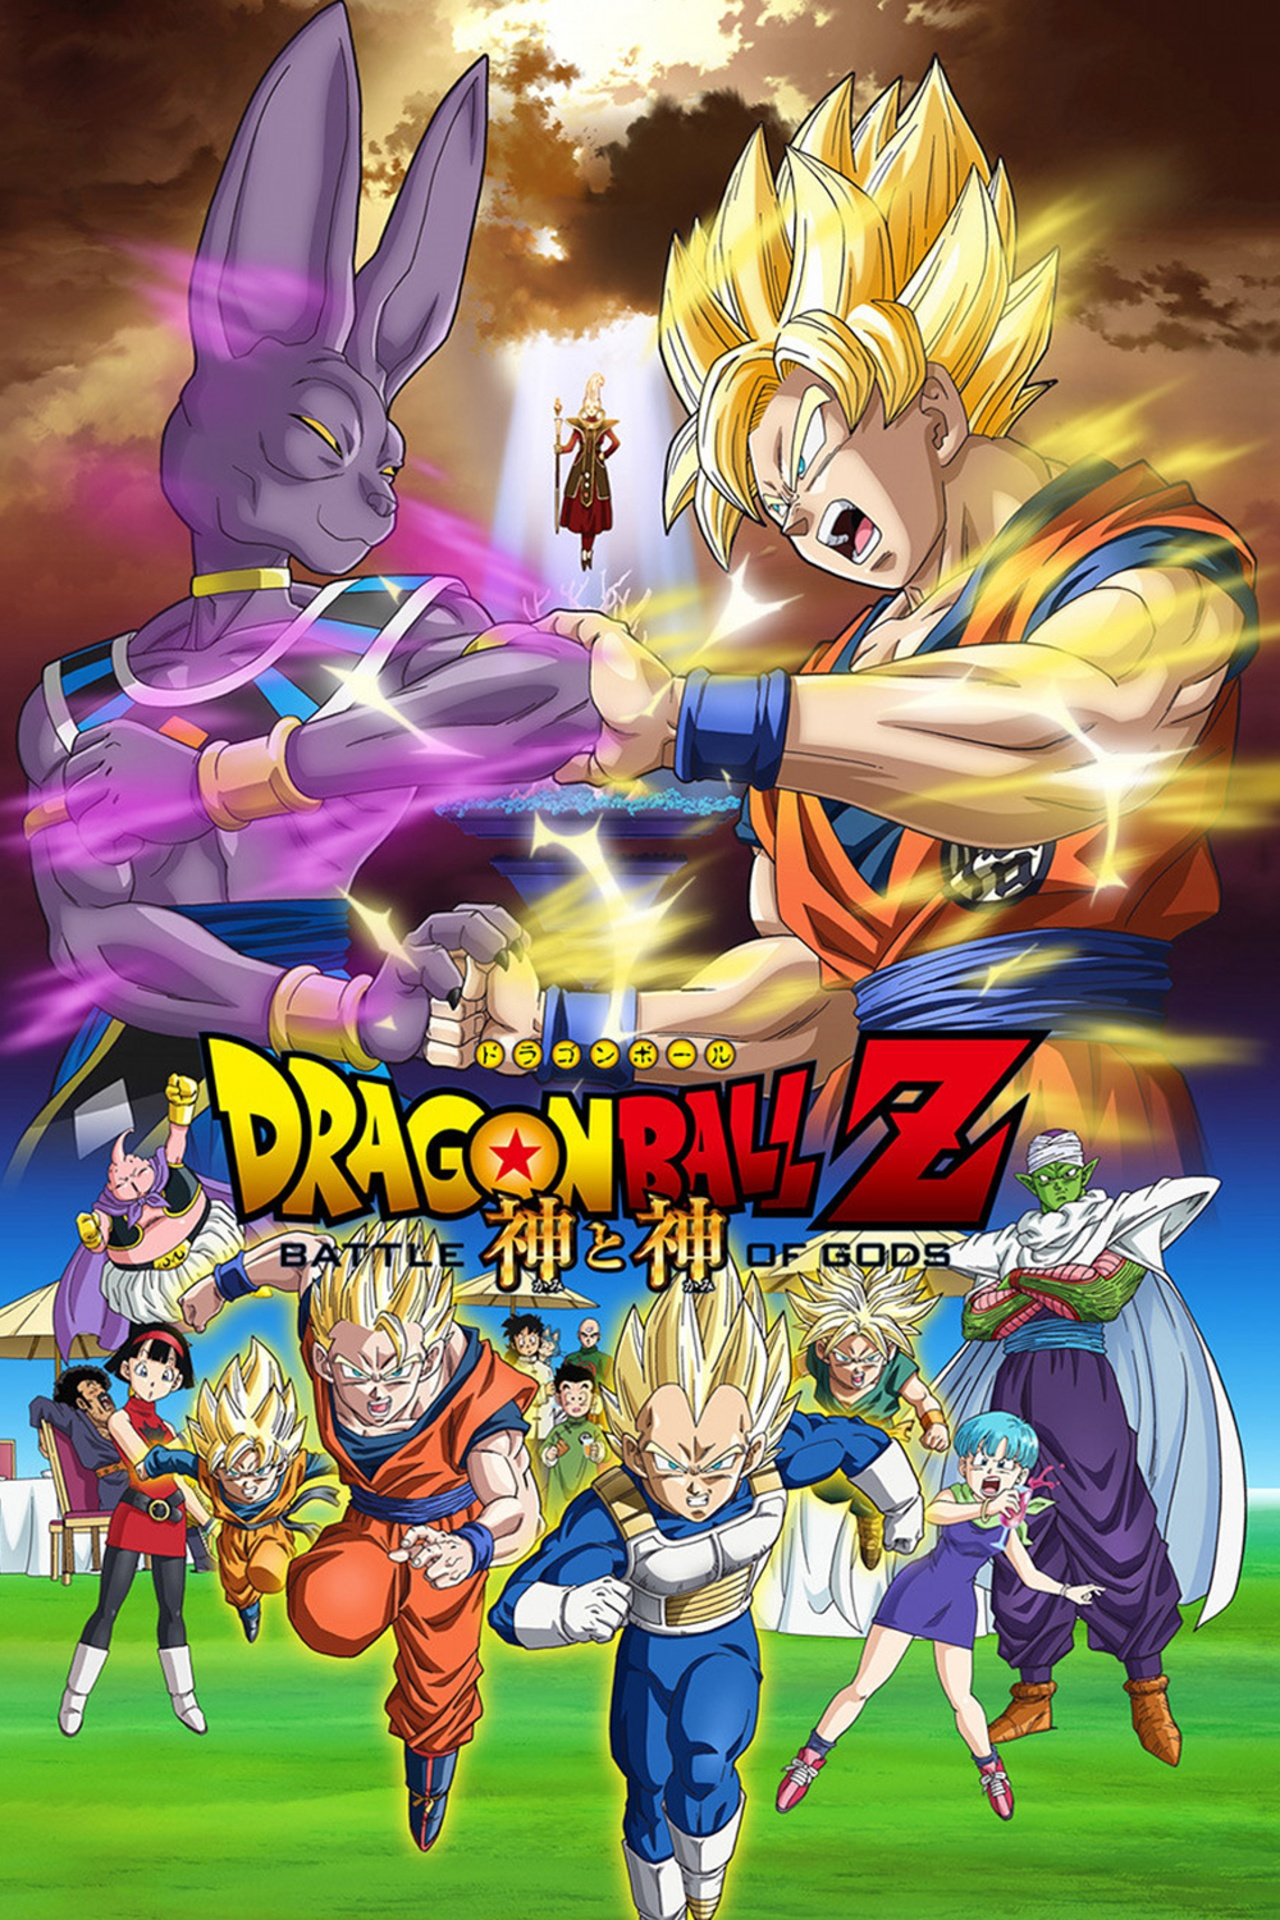 Dragon Ball Z: Battle of Gods kapak